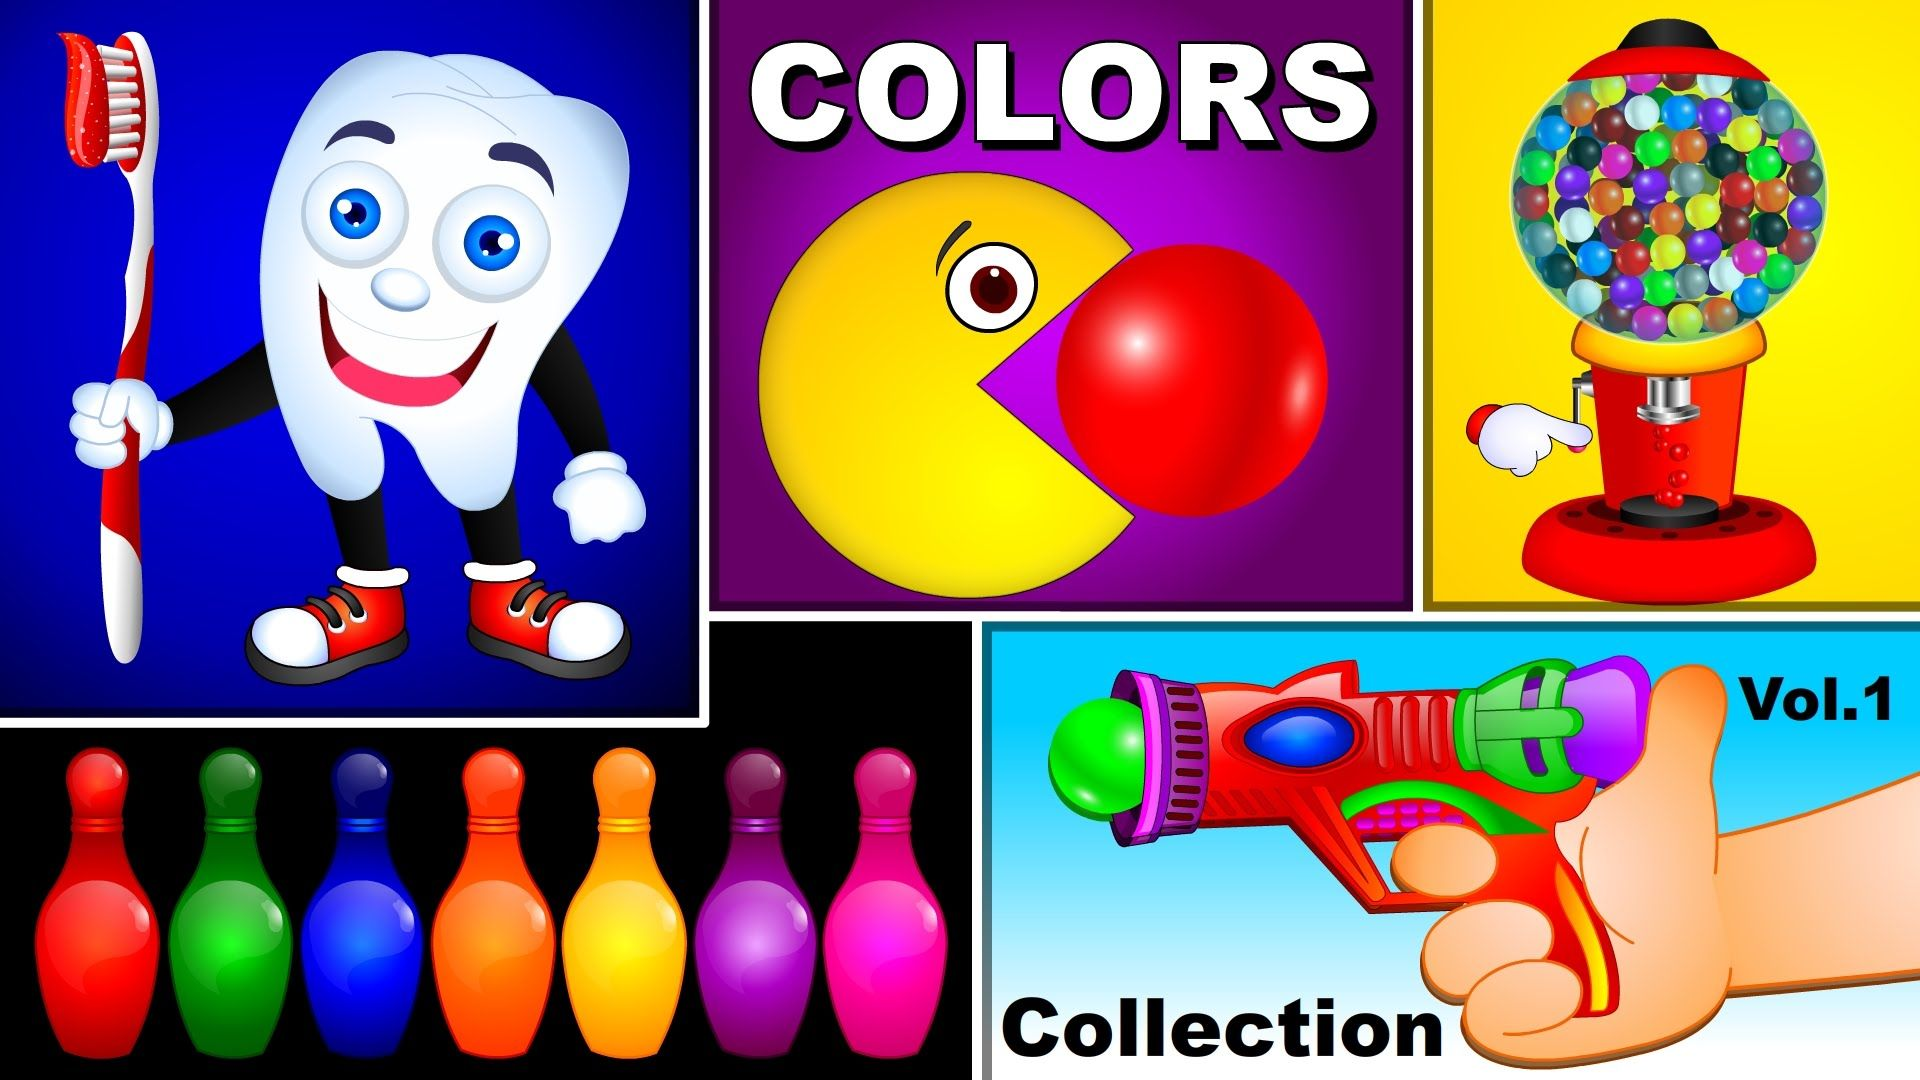 Learn Colors For Children With Colors Songs Collection Teach Colours Kids Learning Videos Children Kids Learning Videos Rhymes For Kids Learning Colors